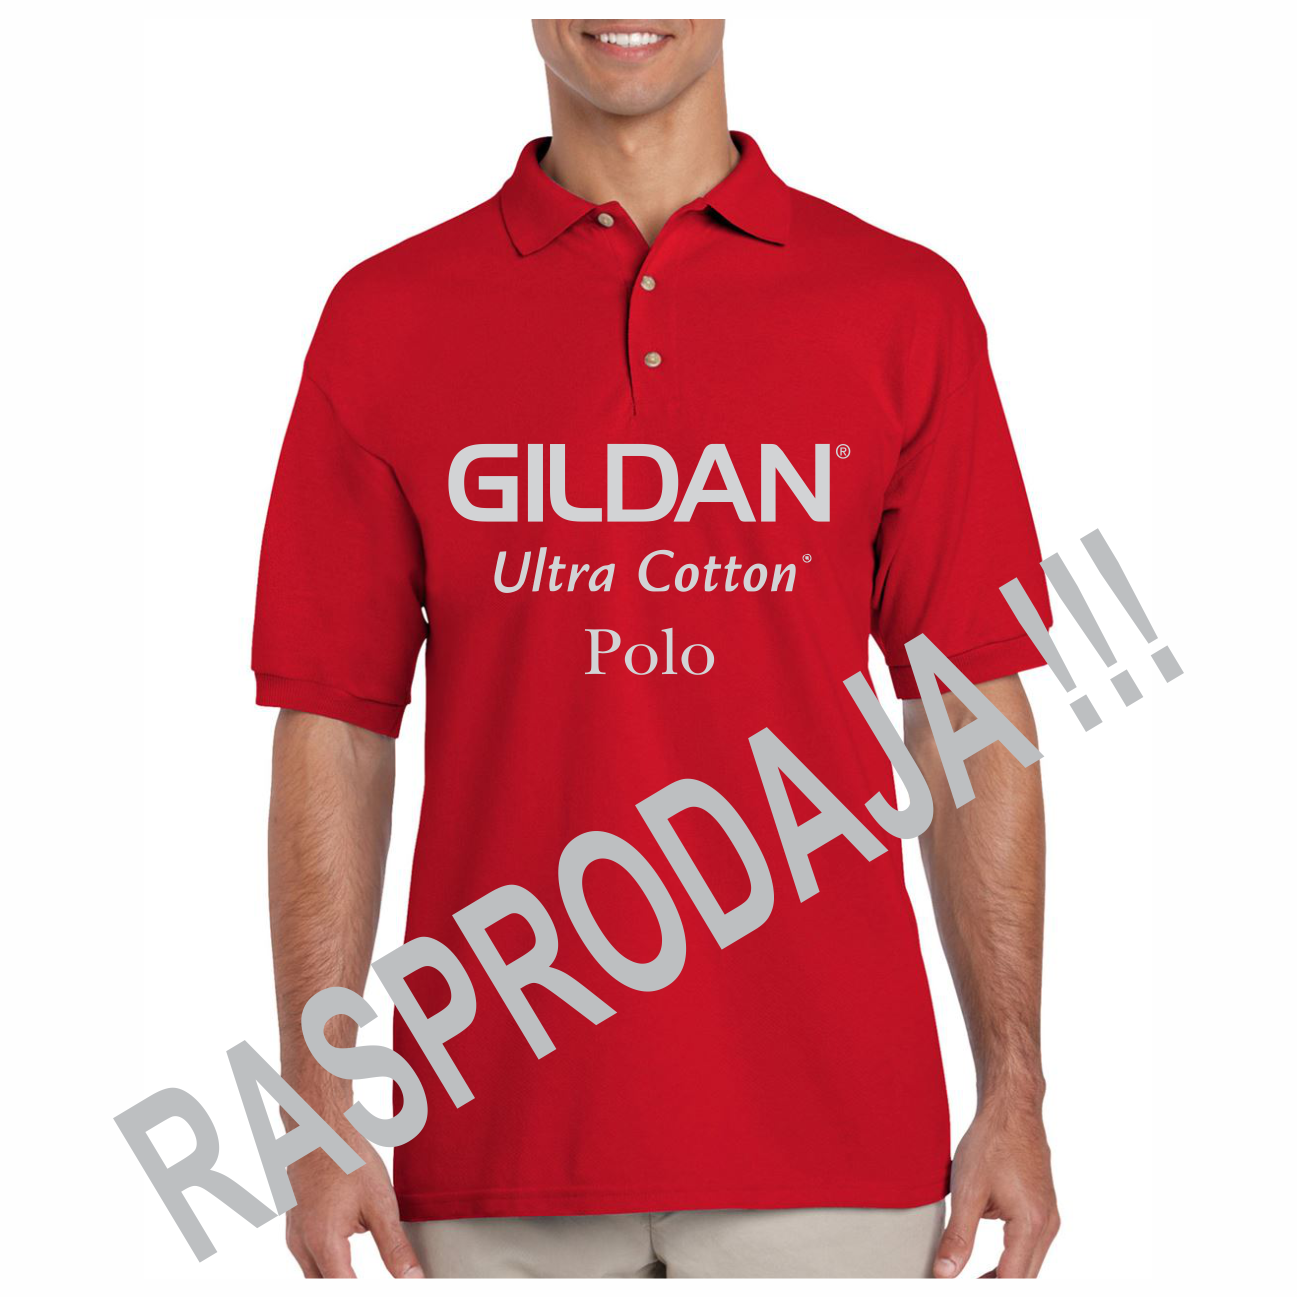 Gildan POLO ULTRA COTTON™ rasprodaja